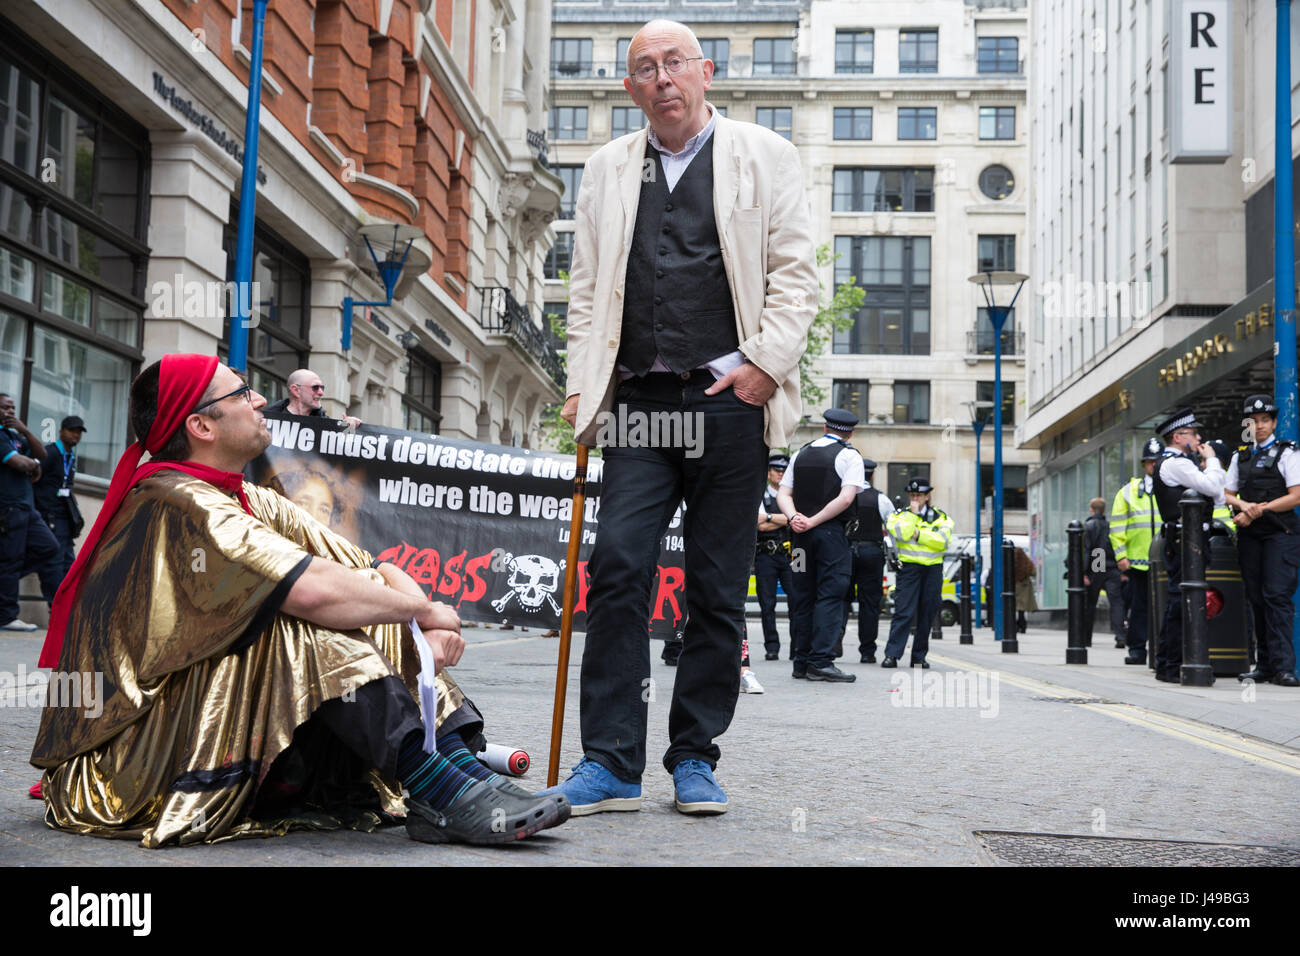 London, UK. 11th May, 2017. Ian Bone (r) of Class War talks to a Life Not Money activist during a protest in solidarity - Stock Image